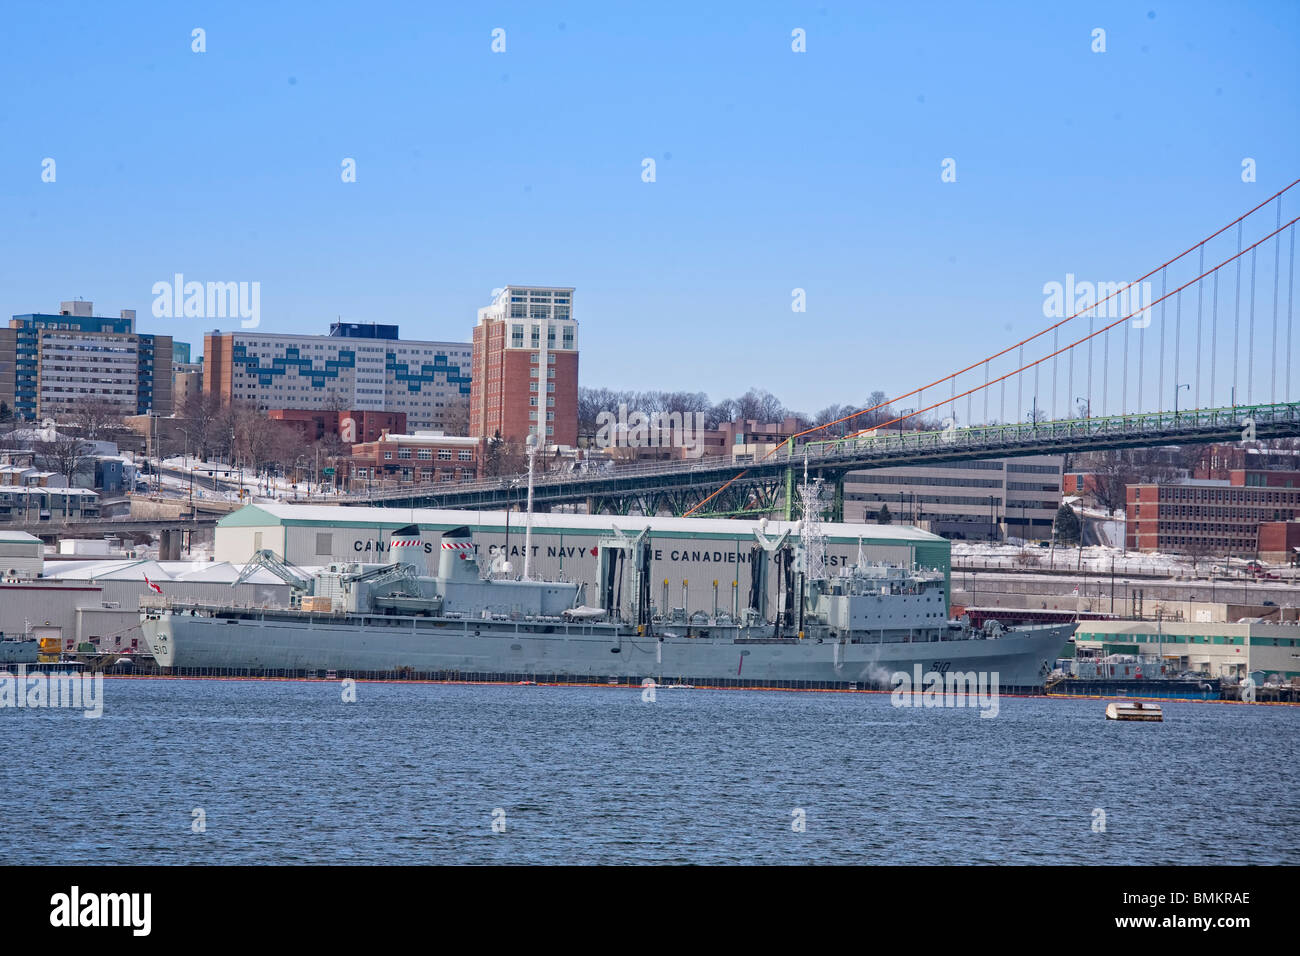 HMC Dockyard is part of Canadian Forces Base Halifax and is Canada's East Coast naval base and home port to - Stock Image